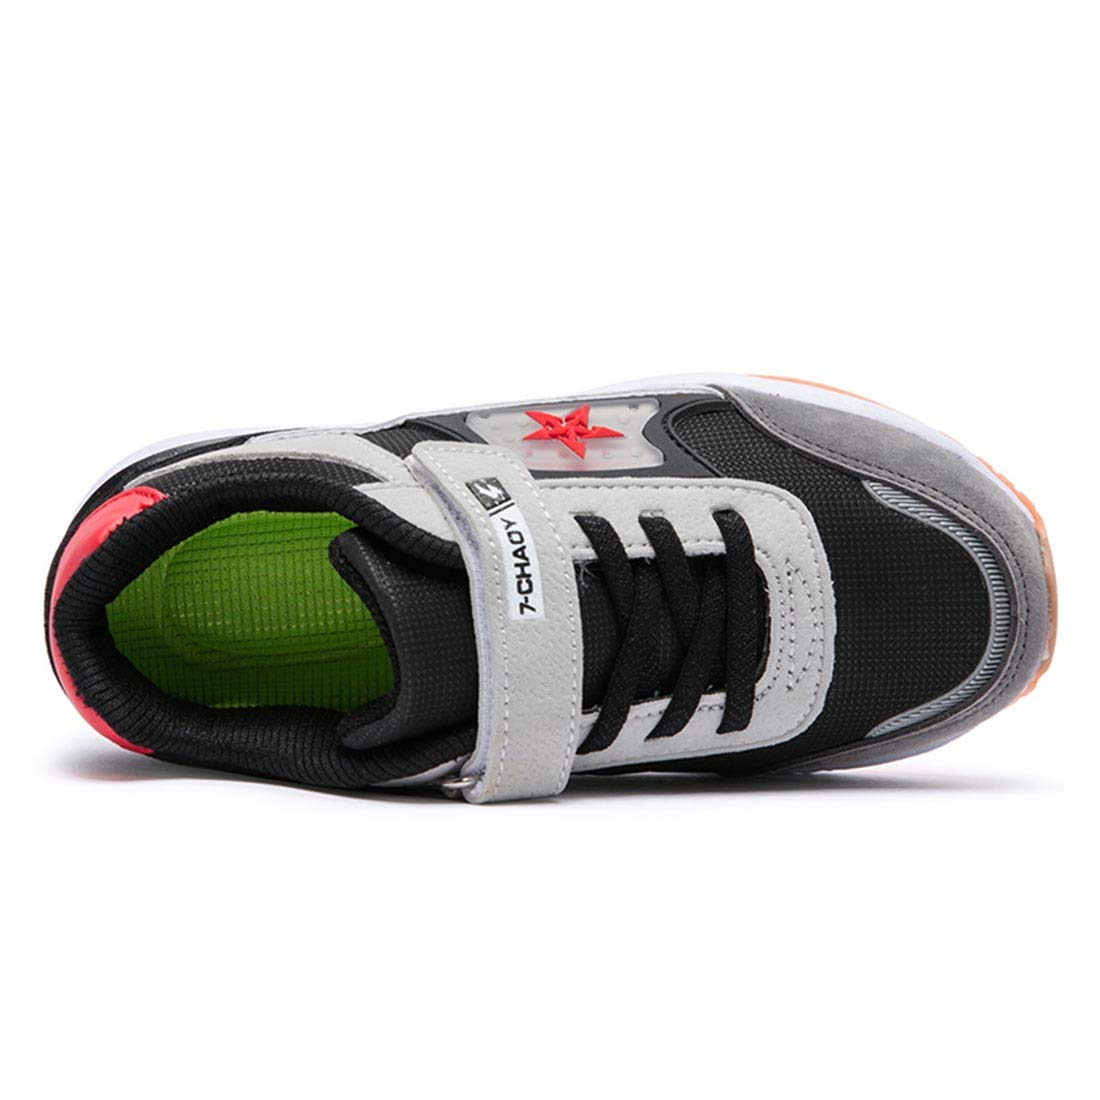 YIBLBOX Boys Fashion Sneakers Kids Girls Low-Top Trainers Sports Outdoor Inspired Pumps Shoes